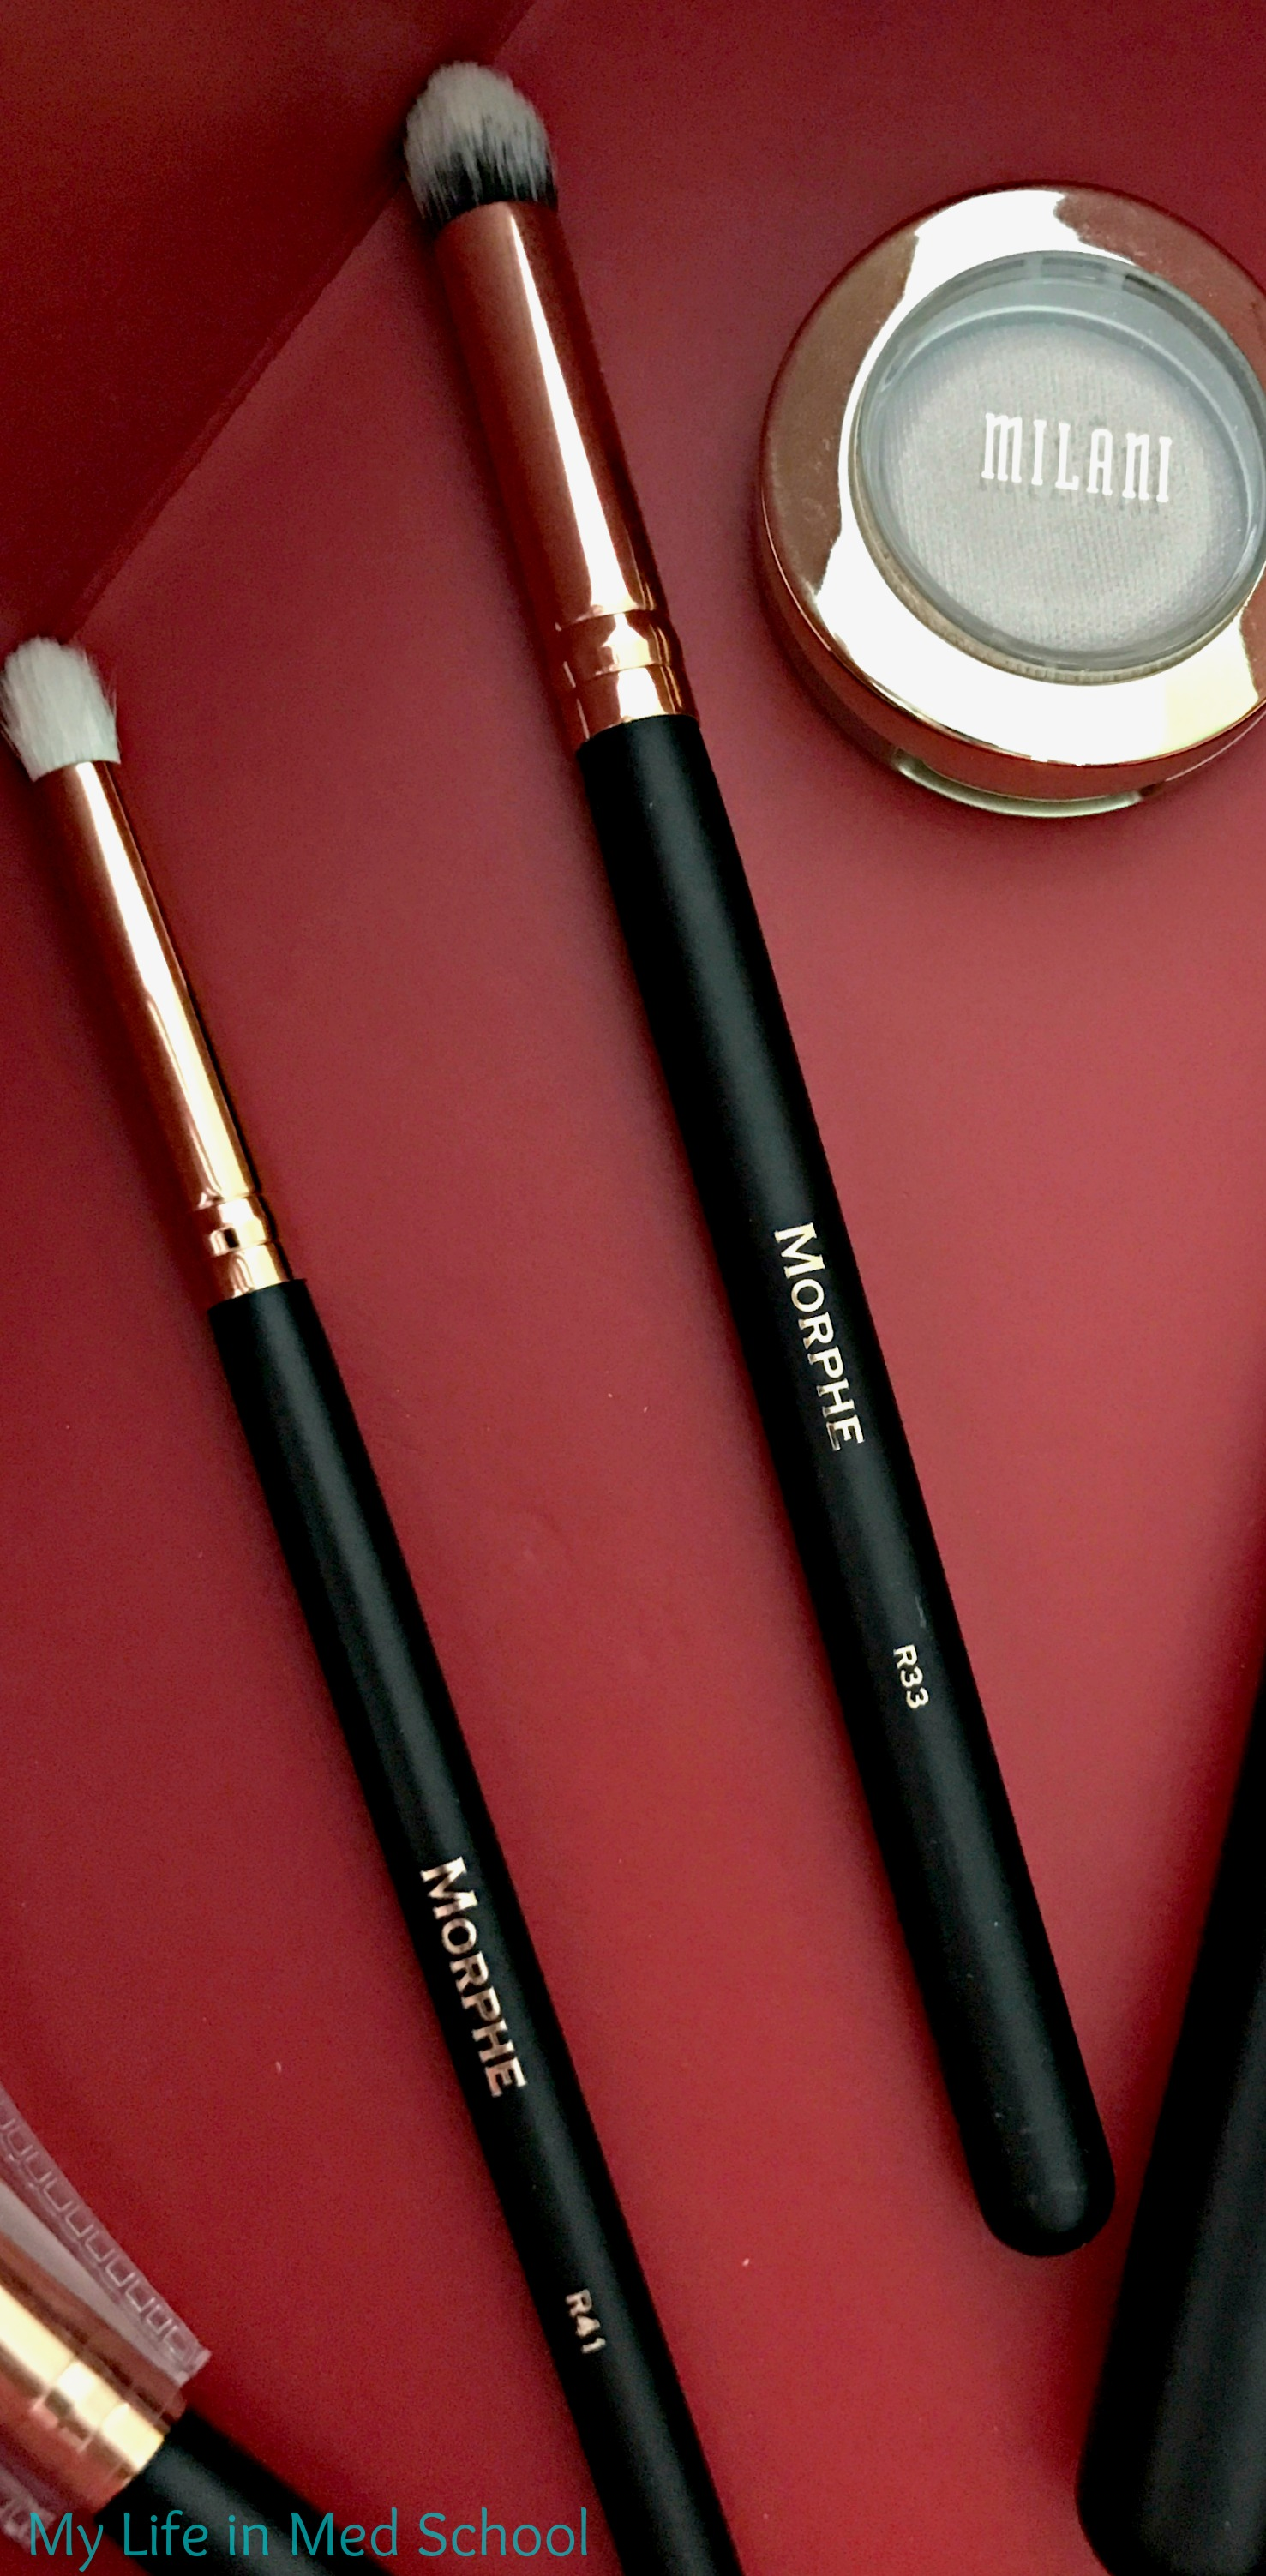 Morphe R33 and R41